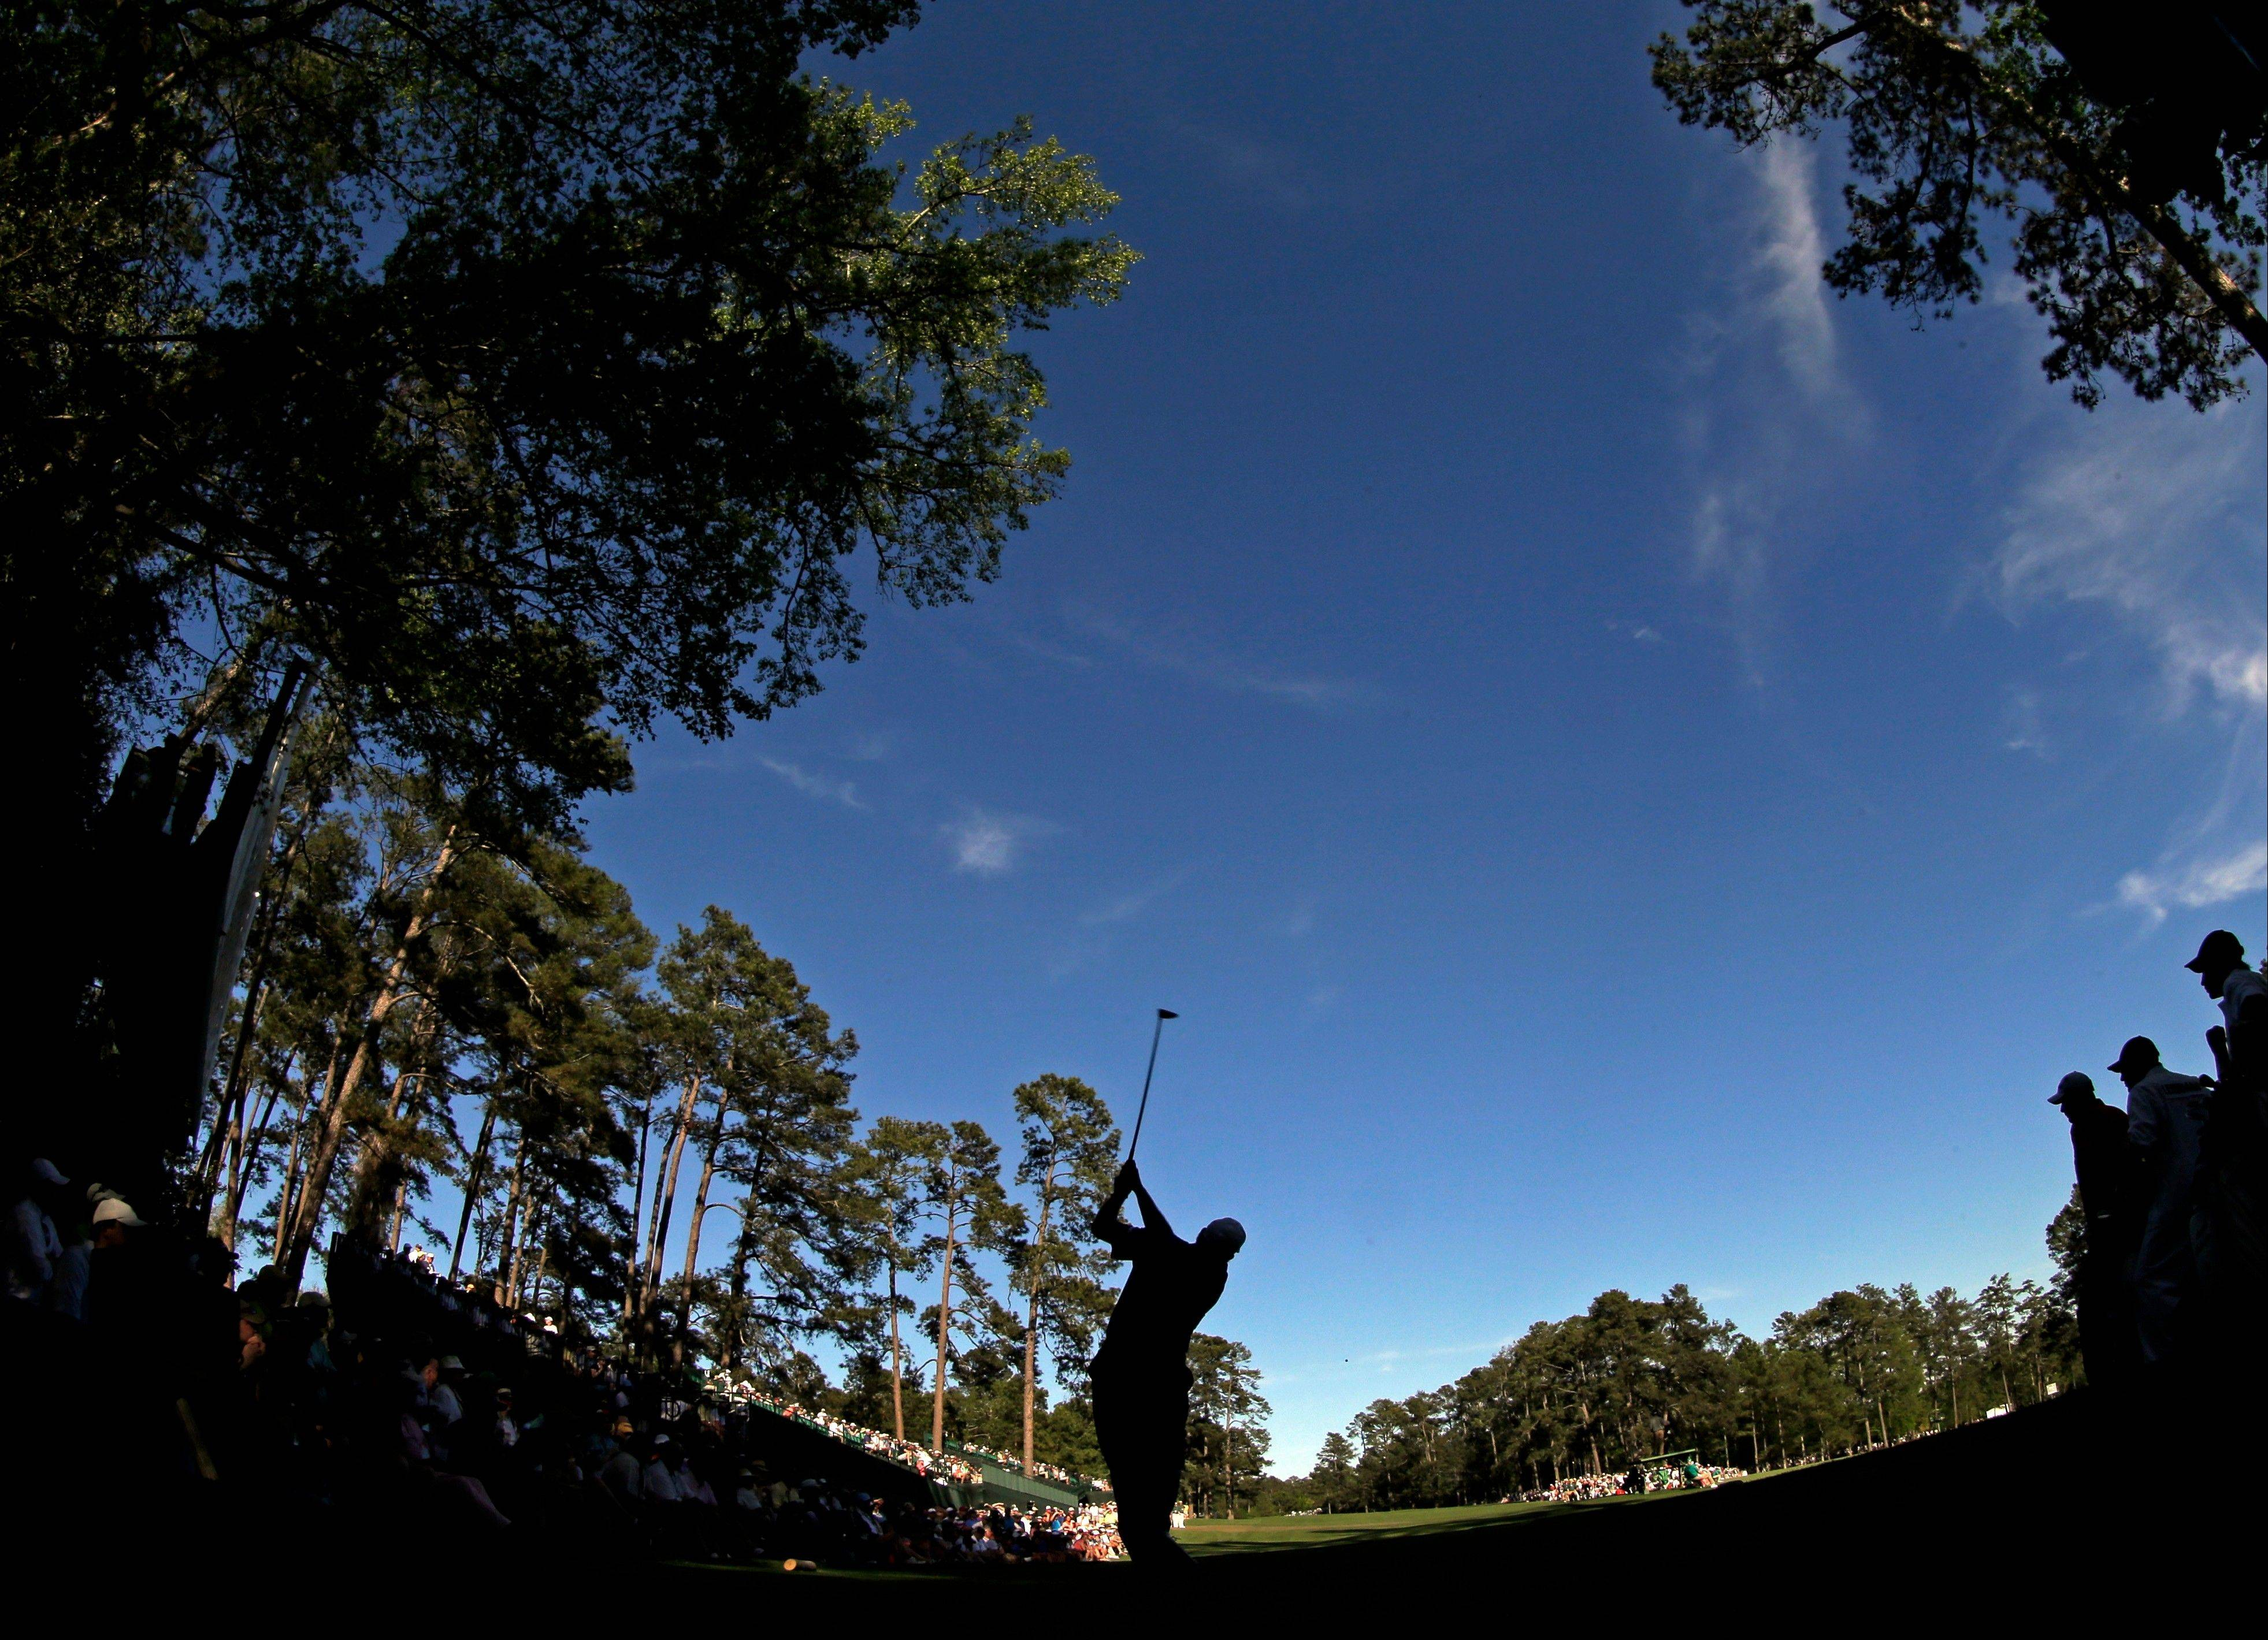 Angel Cabrera, of Argentina, tees off on the 14th hole during the third round of the Masters golf tournament Saturday, April 13, 2013, in Augusta, Ga.